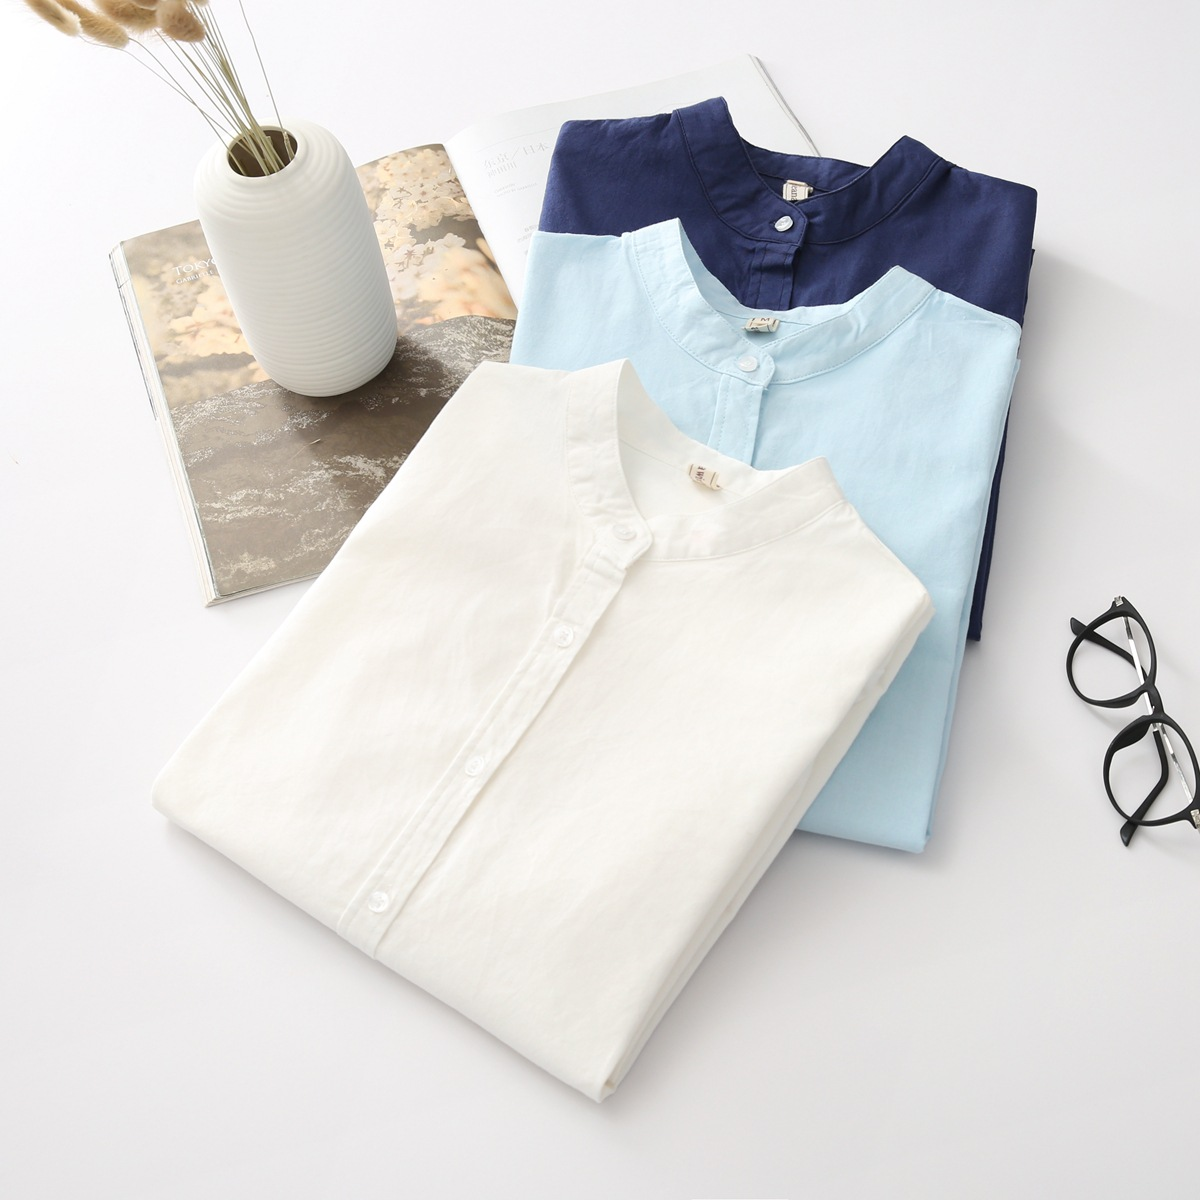 EYM 2019 Brand New Arrival Women's Shirt Casual Cotton Stand Collar Solid Color White Long Sleeve Blouses Simple Style Lady Tops